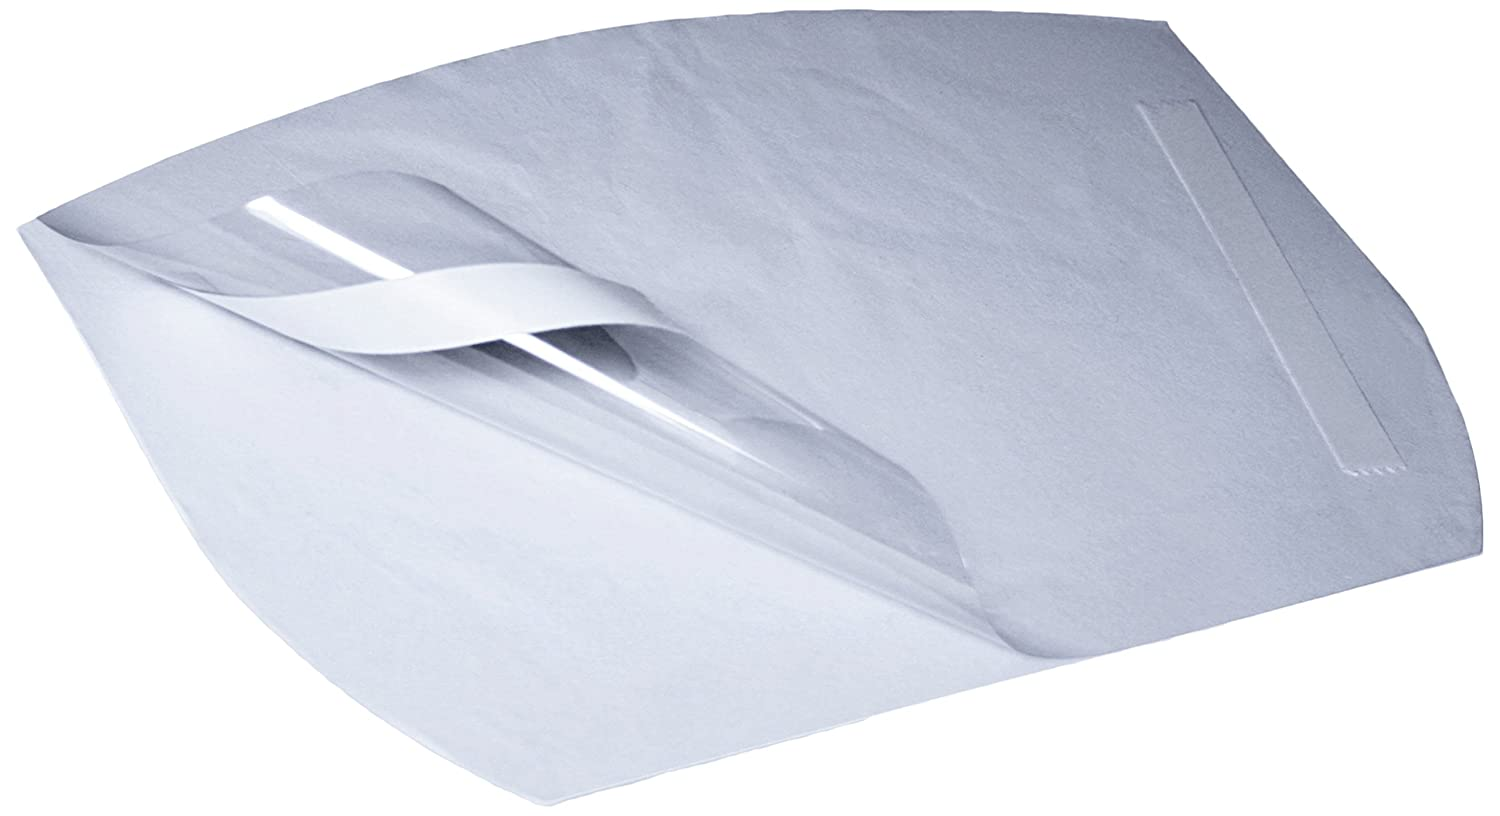 for S-600 S-700 and S-800 Assemblies 40 EA//Case Pack of 40 3M Versaflo 37302-case Peel-Off Visor Cover S-922 Clear